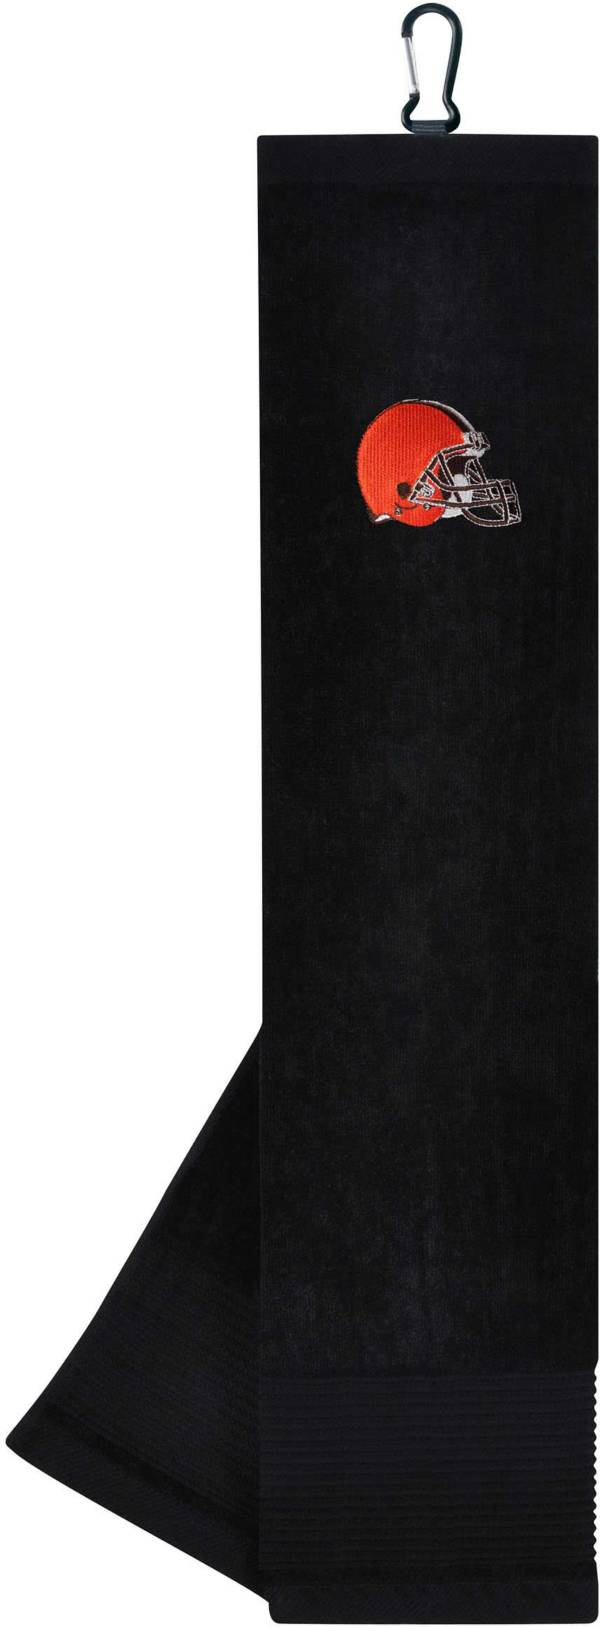 Team Effort Cleveland Browns Embroidered Face/Club Tri-Fold Towel product image